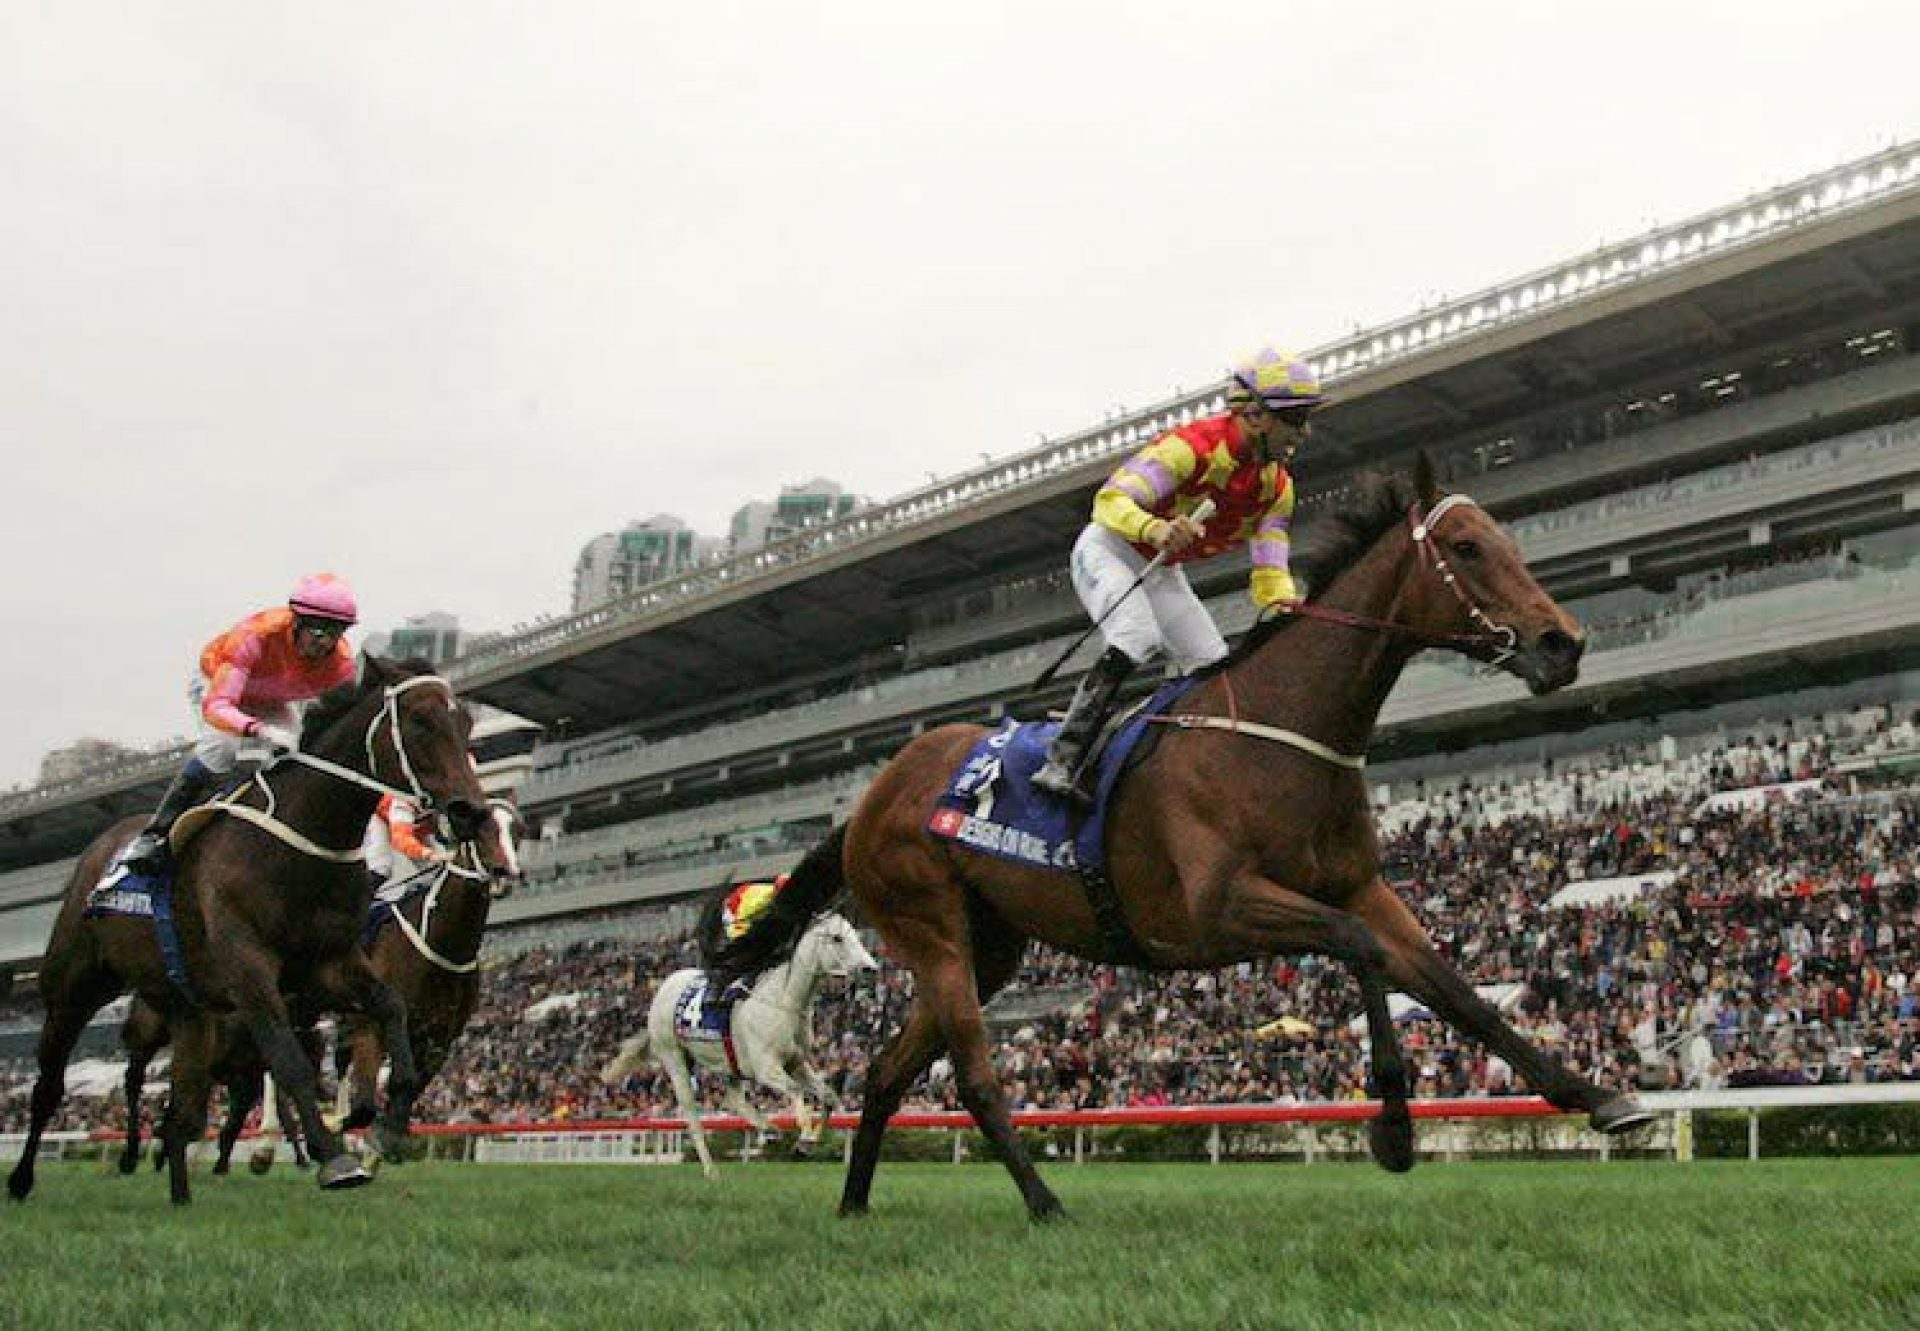 Designs On Rome (Holy Roman Emperor) winning the G1 Citibank Hong Kong Gold Cup at Sha Tin